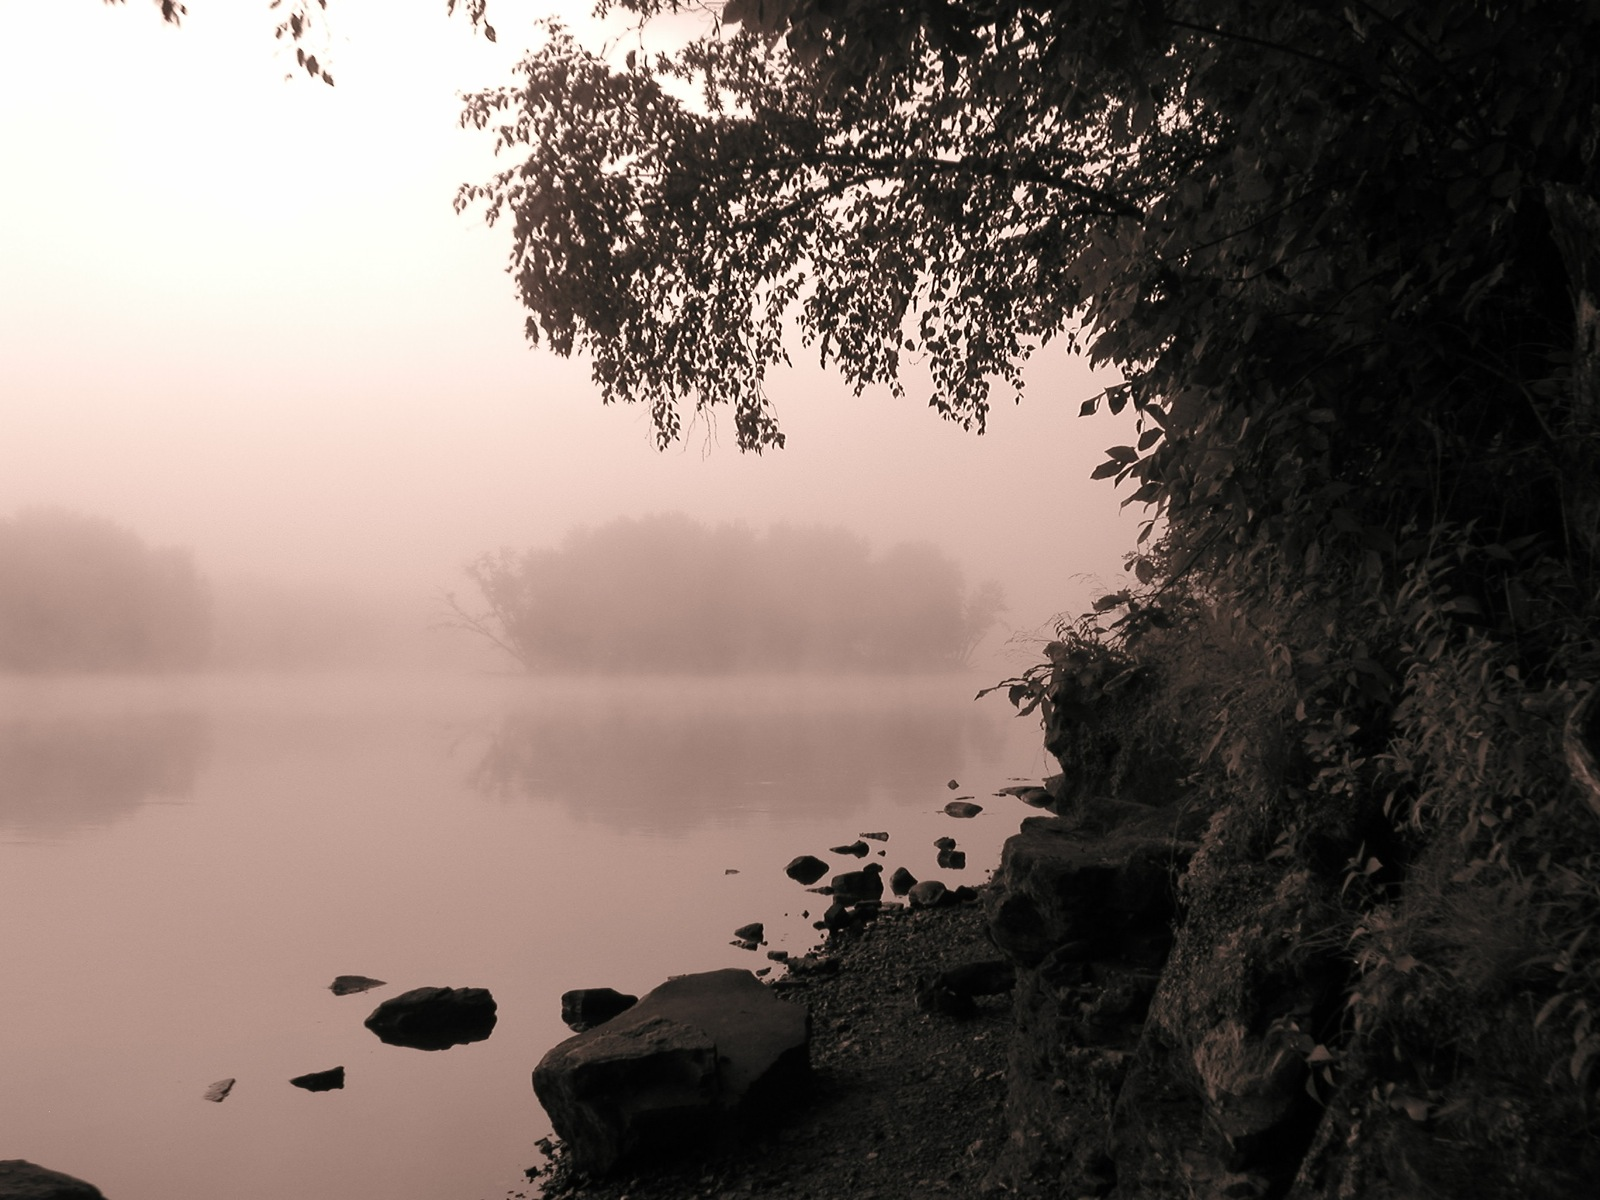 Black and white photo of a shoreline and islands on a misty morning on the lake.